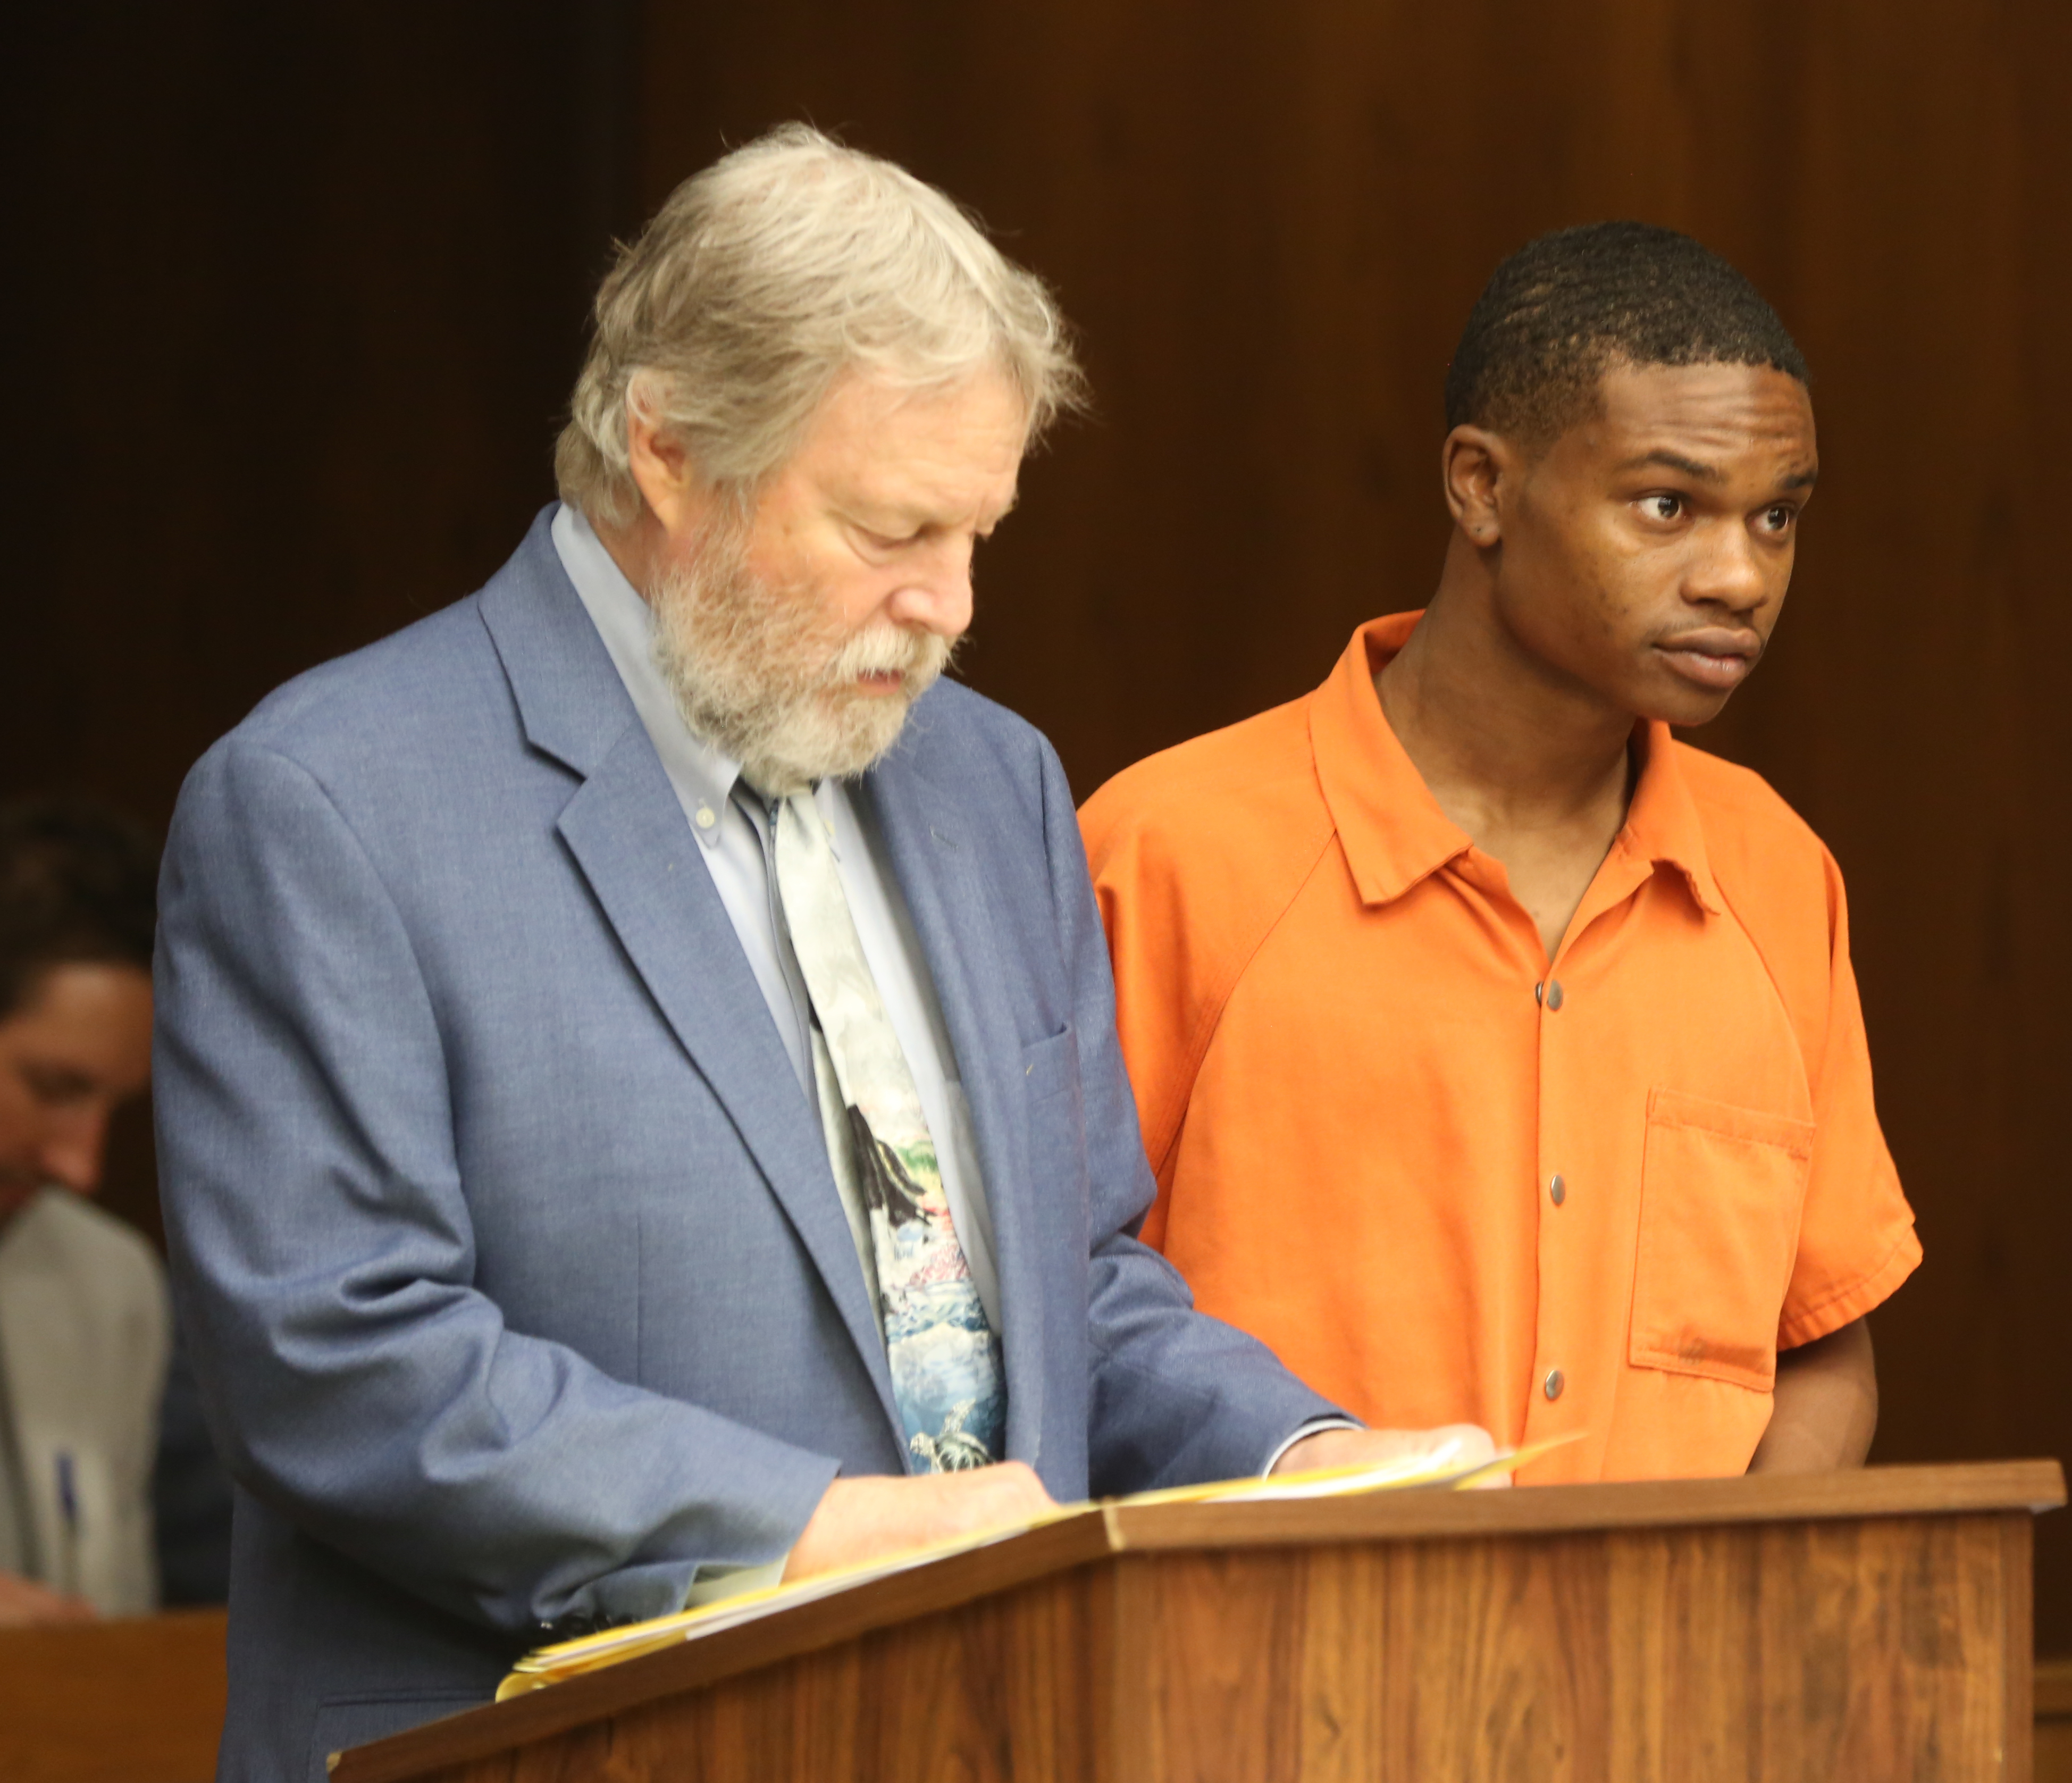 Judge sets bond for two men charged with attempted murder